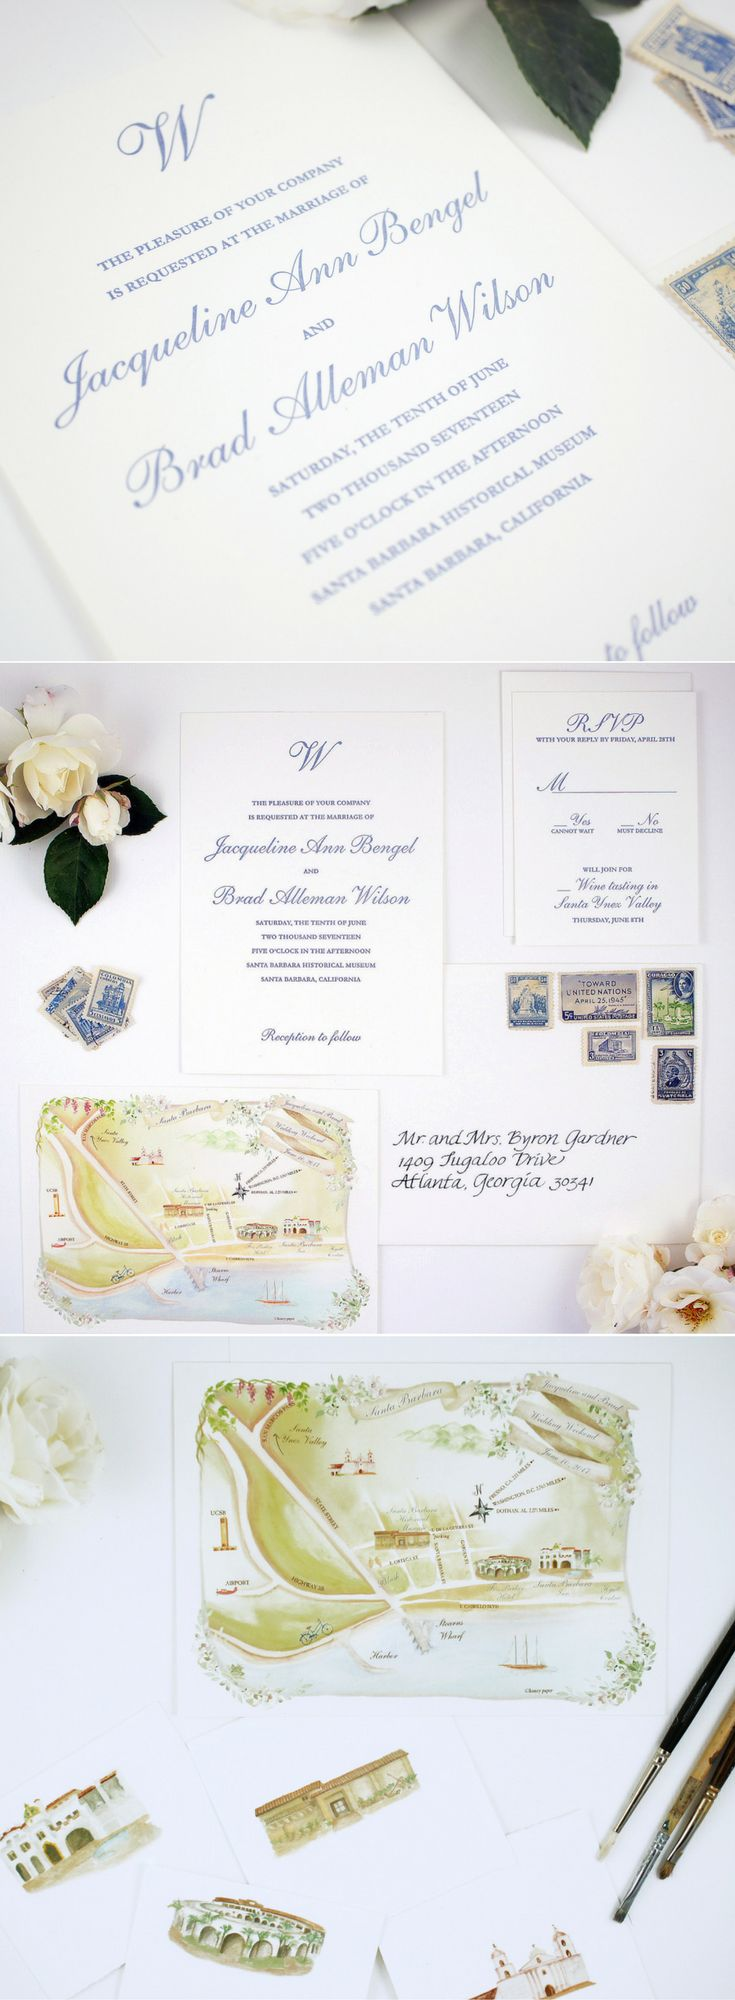 Beautiful wine country with custom map of Santa Barbara in the invitation suite. We love the contrast of the simple white and blue letterpress invitation with the colorful and complex map. The suite pieces enhance each other and together set the tone for a unique coastal, destination wedding weekend.